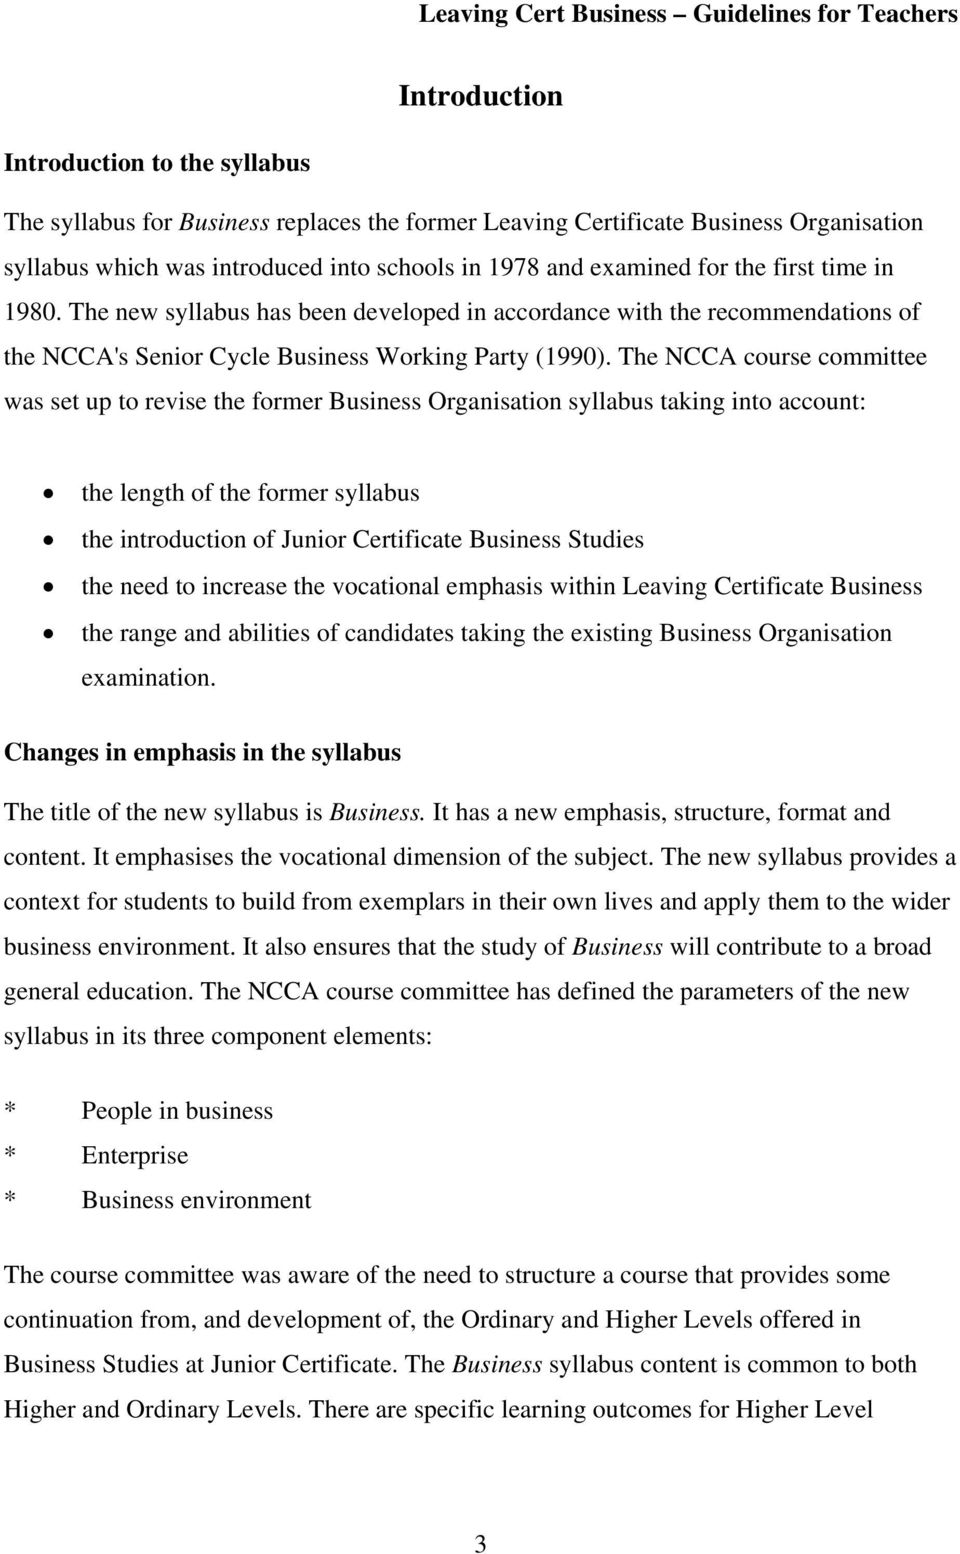 The NCCA course committee was set up to revise the former Business Organisation syllabus taking into account: the length of the former syllabus the introduction of Junior Certificate Business Studies